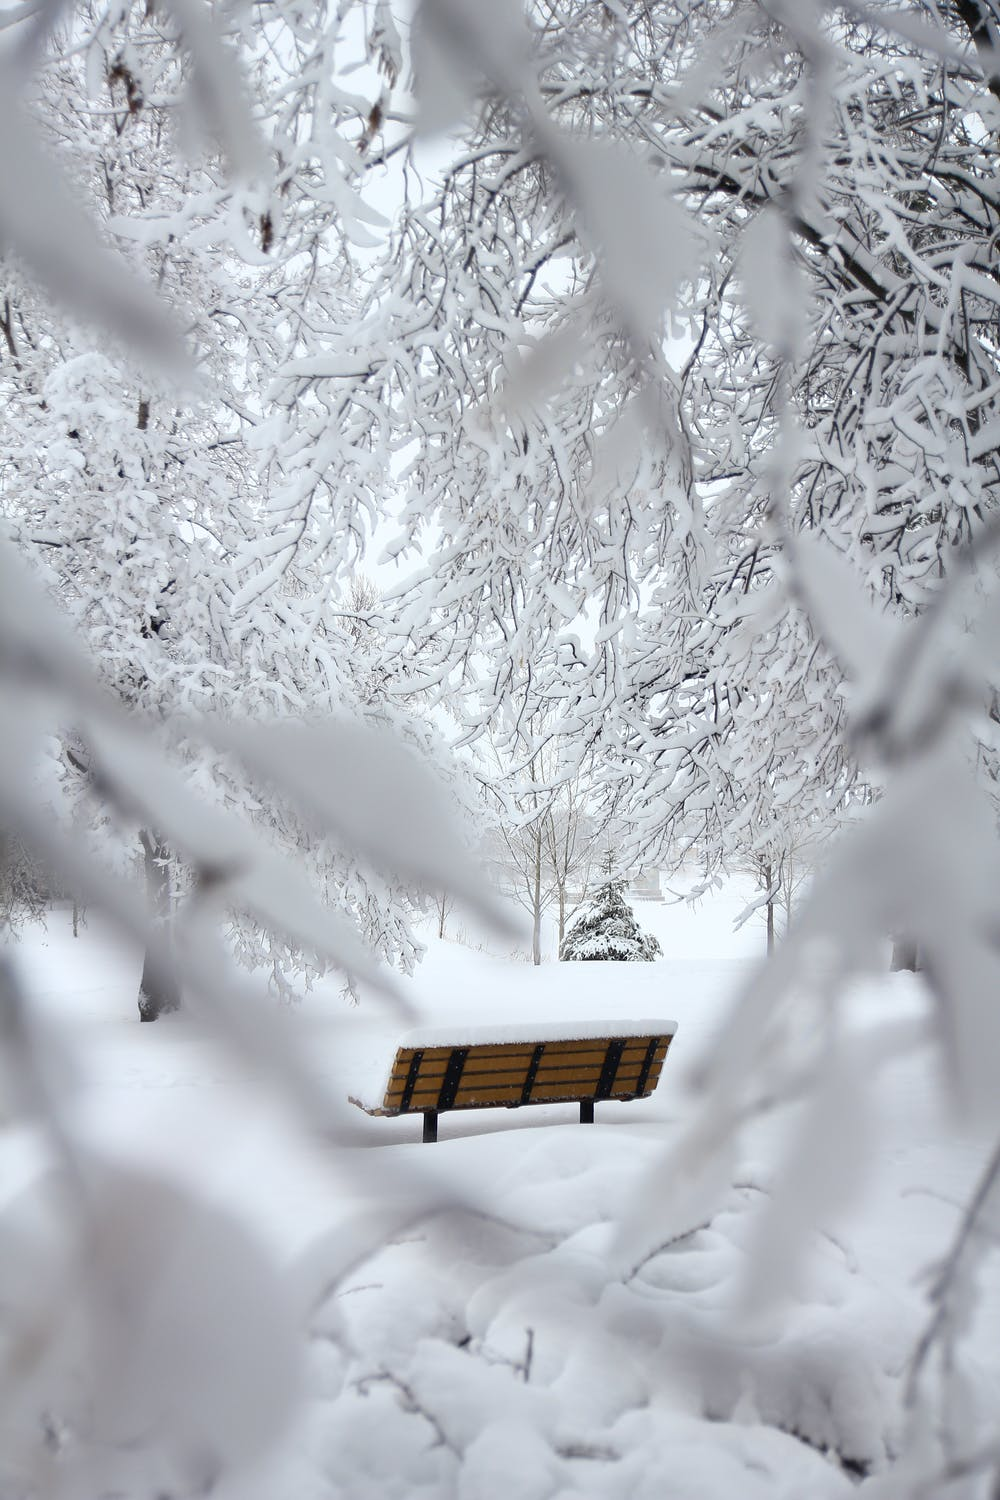 White winter wallpaper with snow and snowy trees